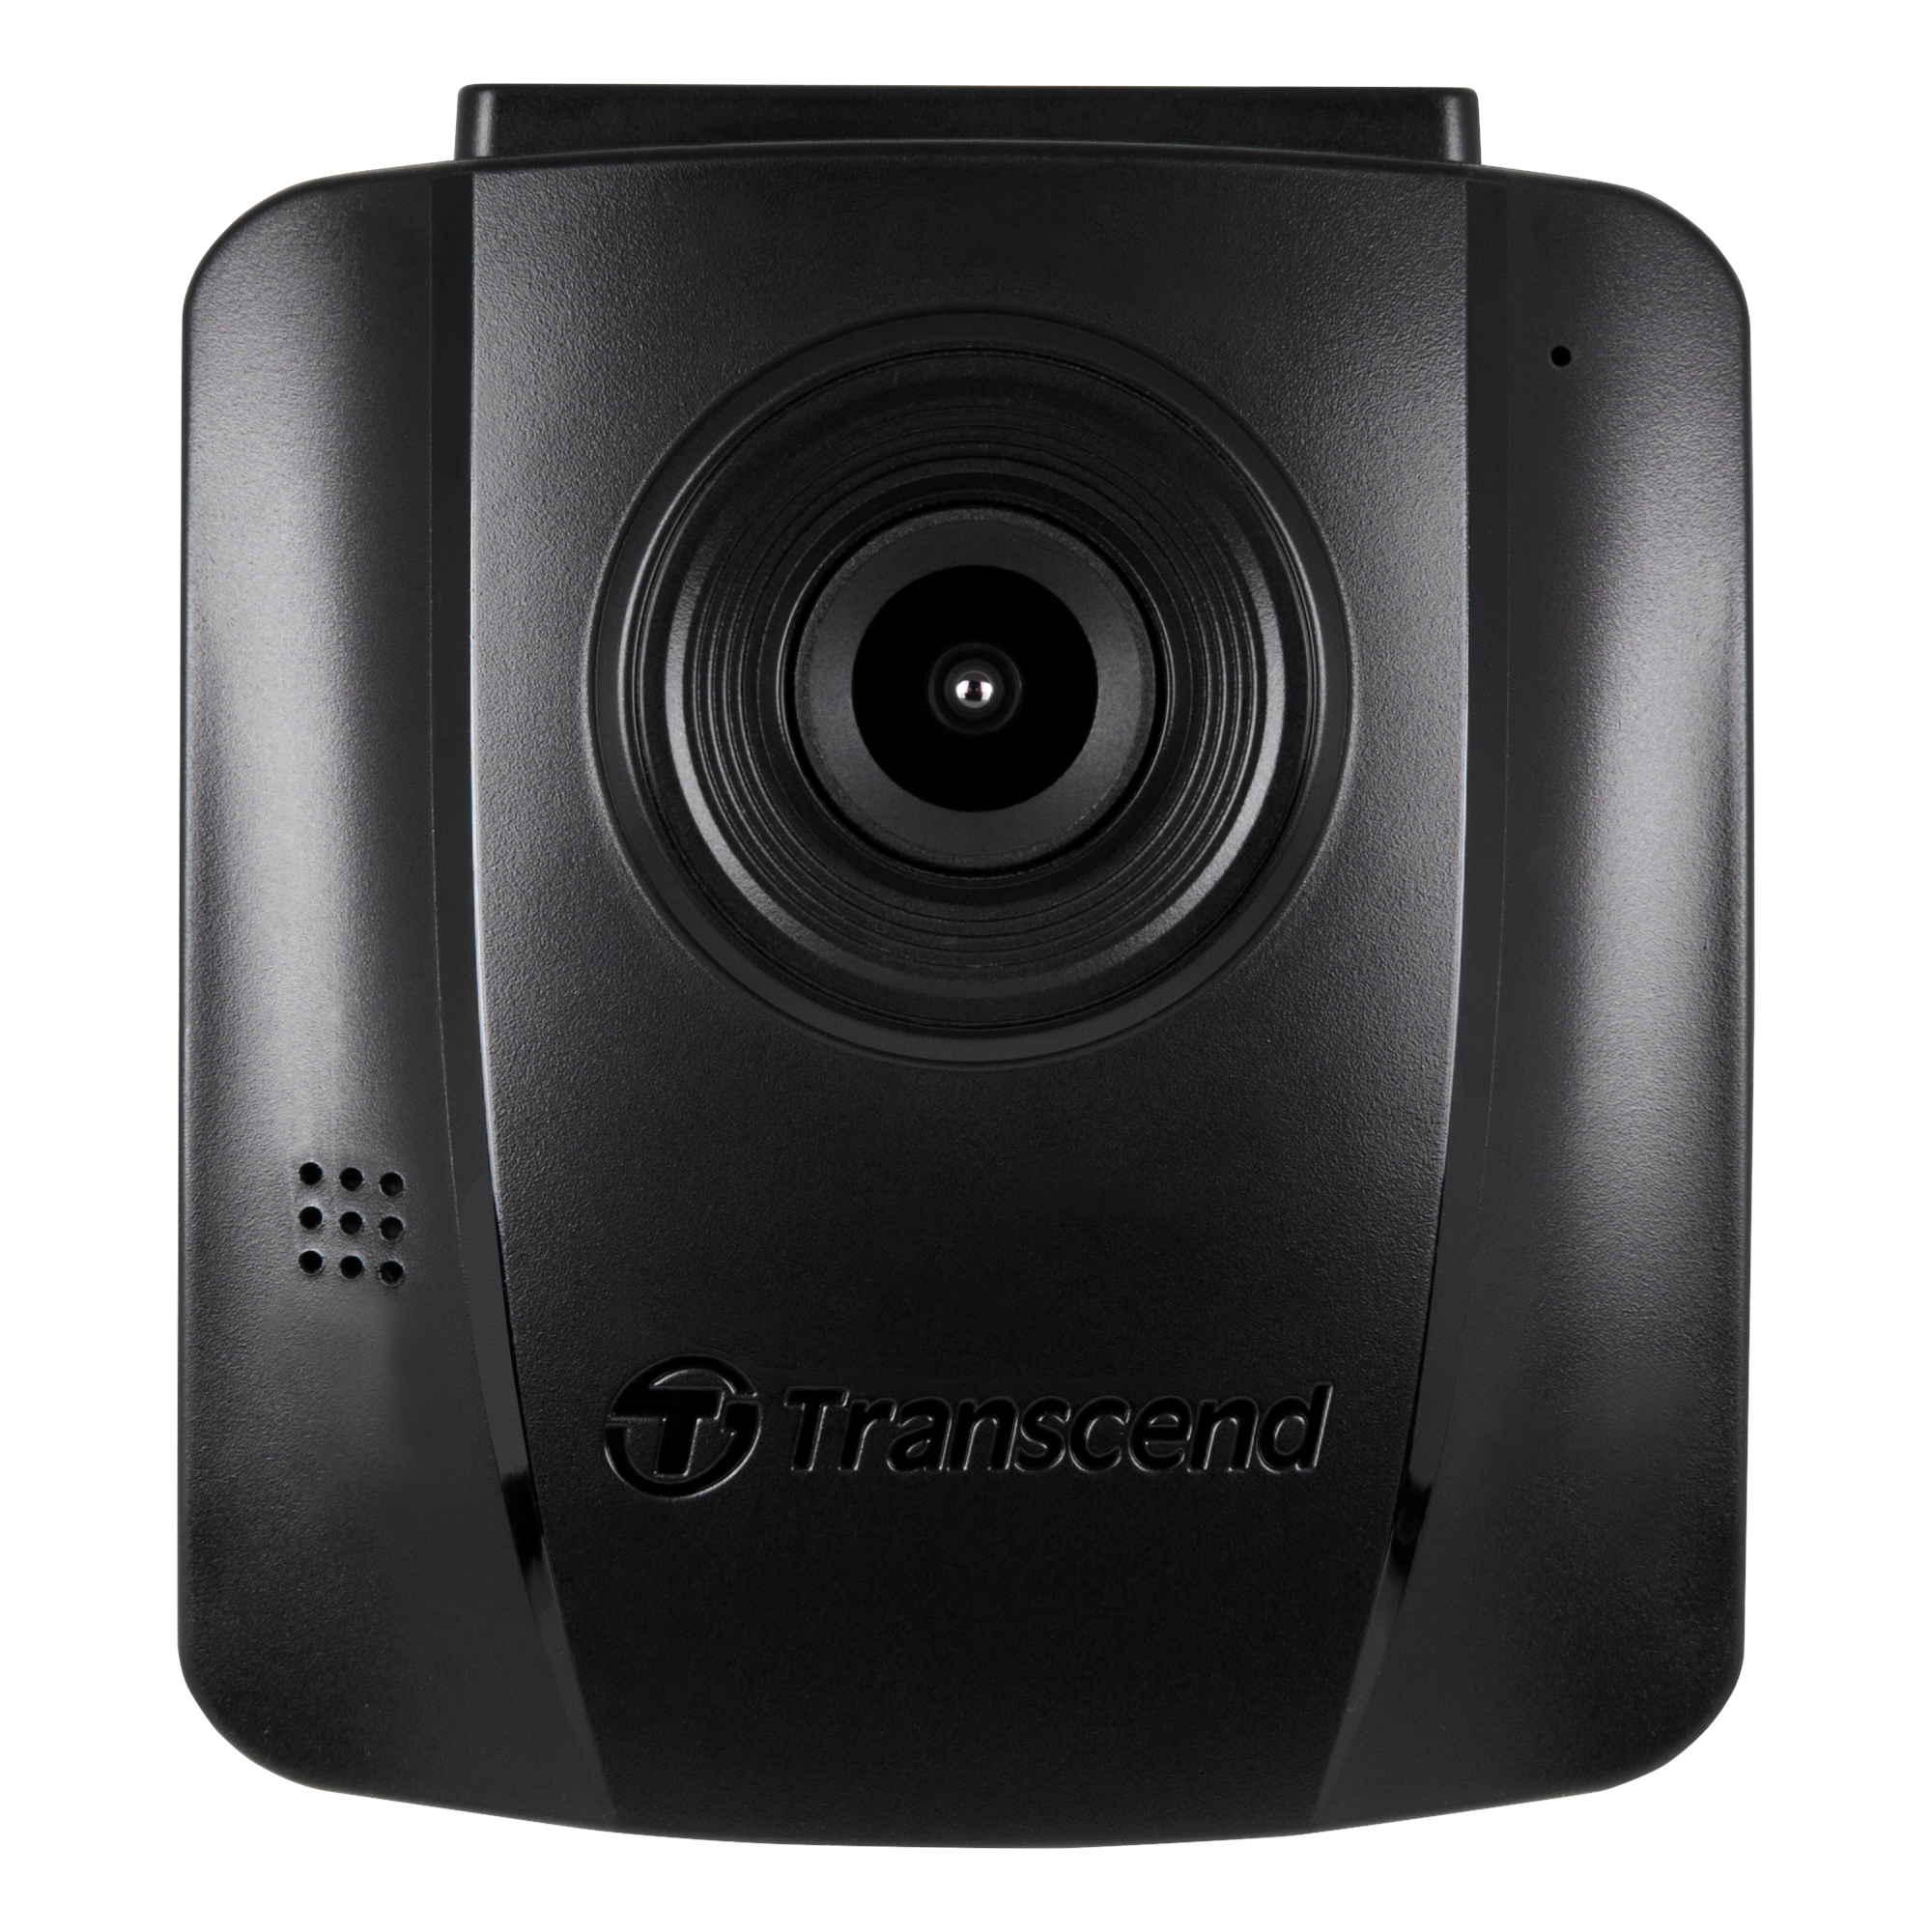 Digital cameras Transcend DrivePro 110 DashCam 32GB Ref TS-DP110M-32G